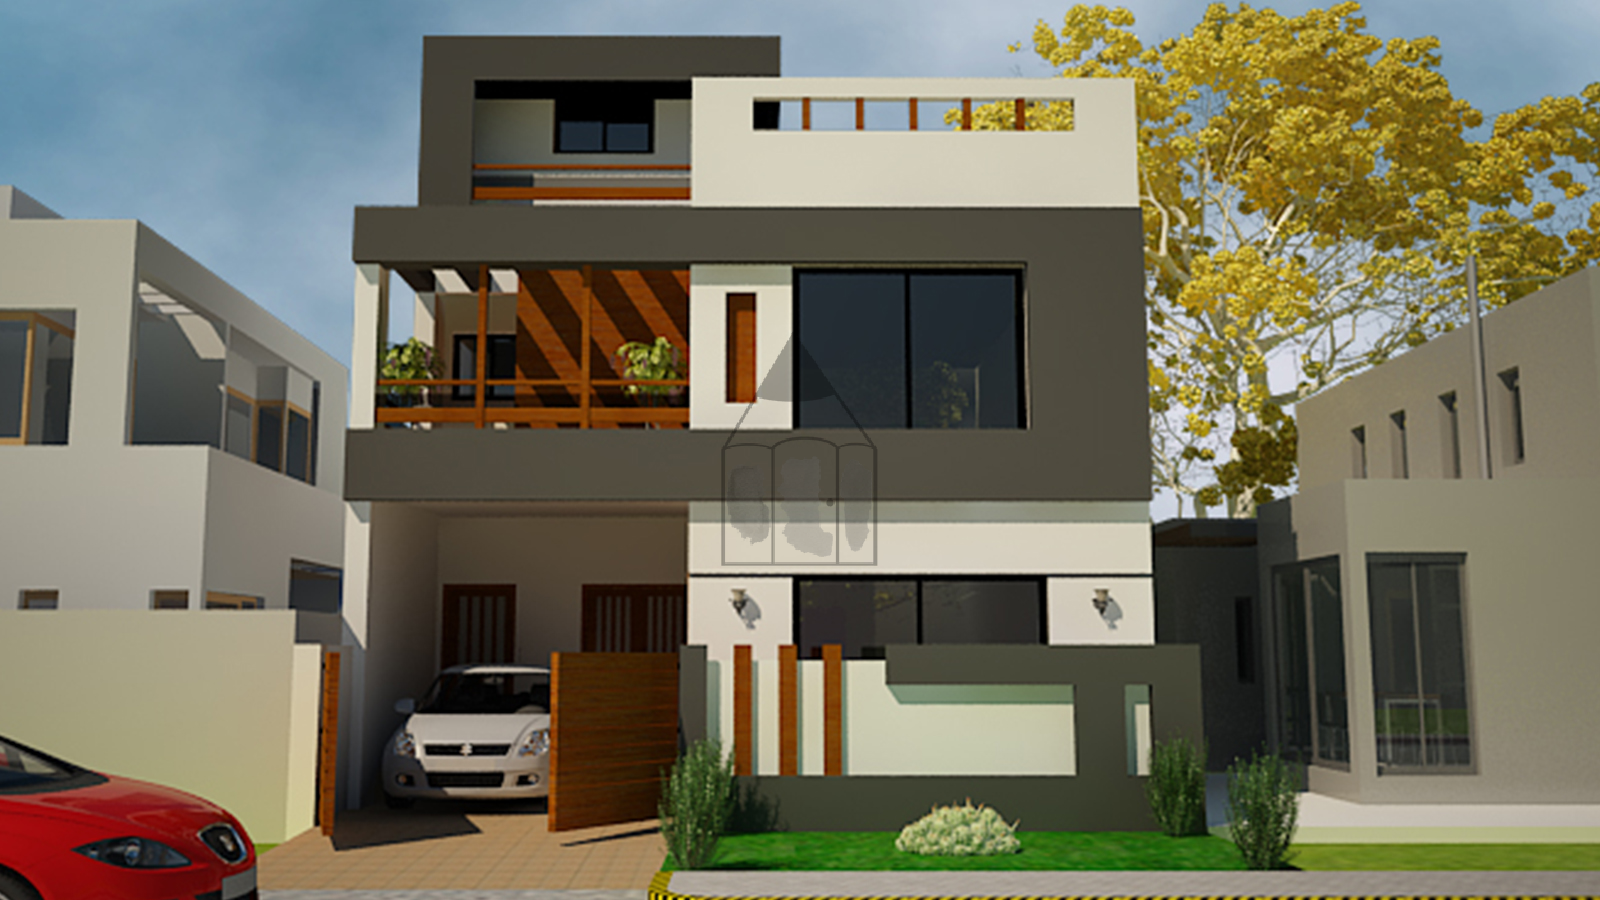 5 marla house front design ashfaq for Building front design